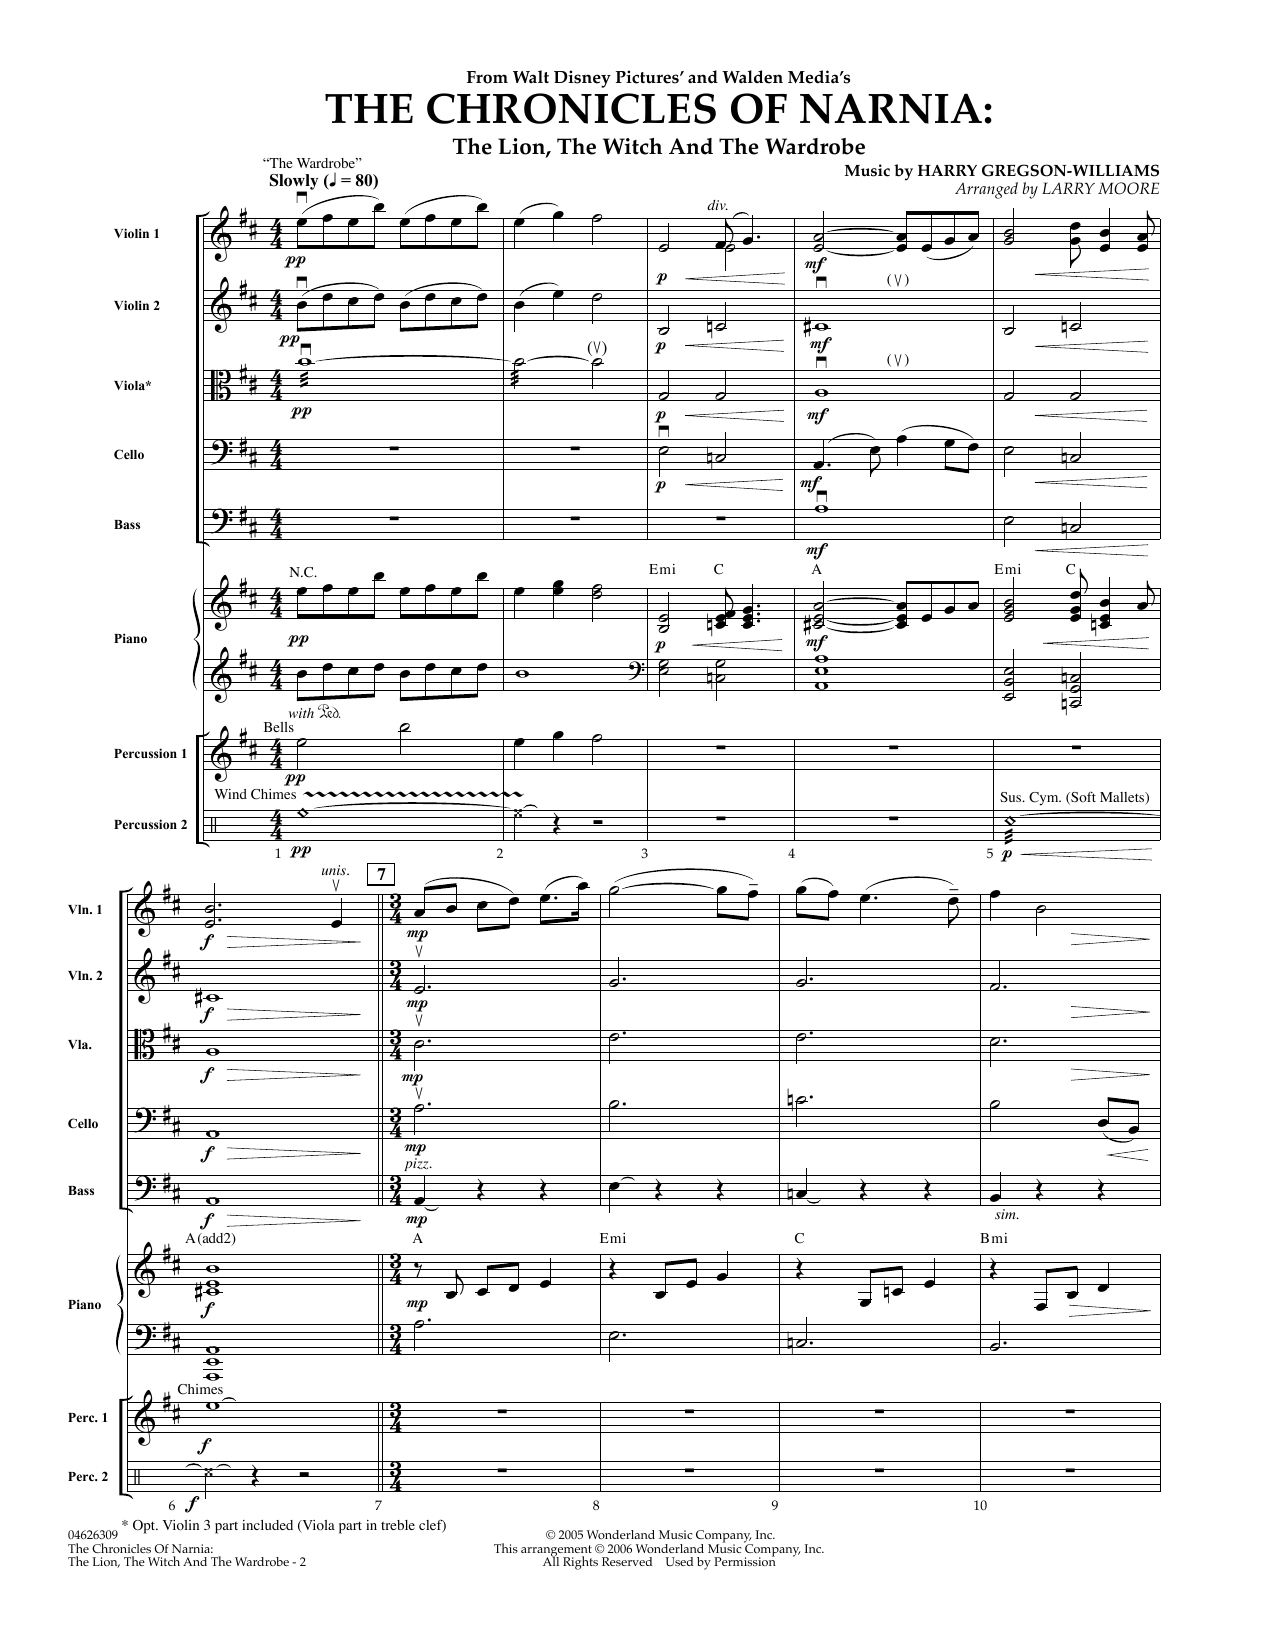 The Chronicles of Narnia (COMPLETE) sheet music for orchestra by Harry Gregson-Williams